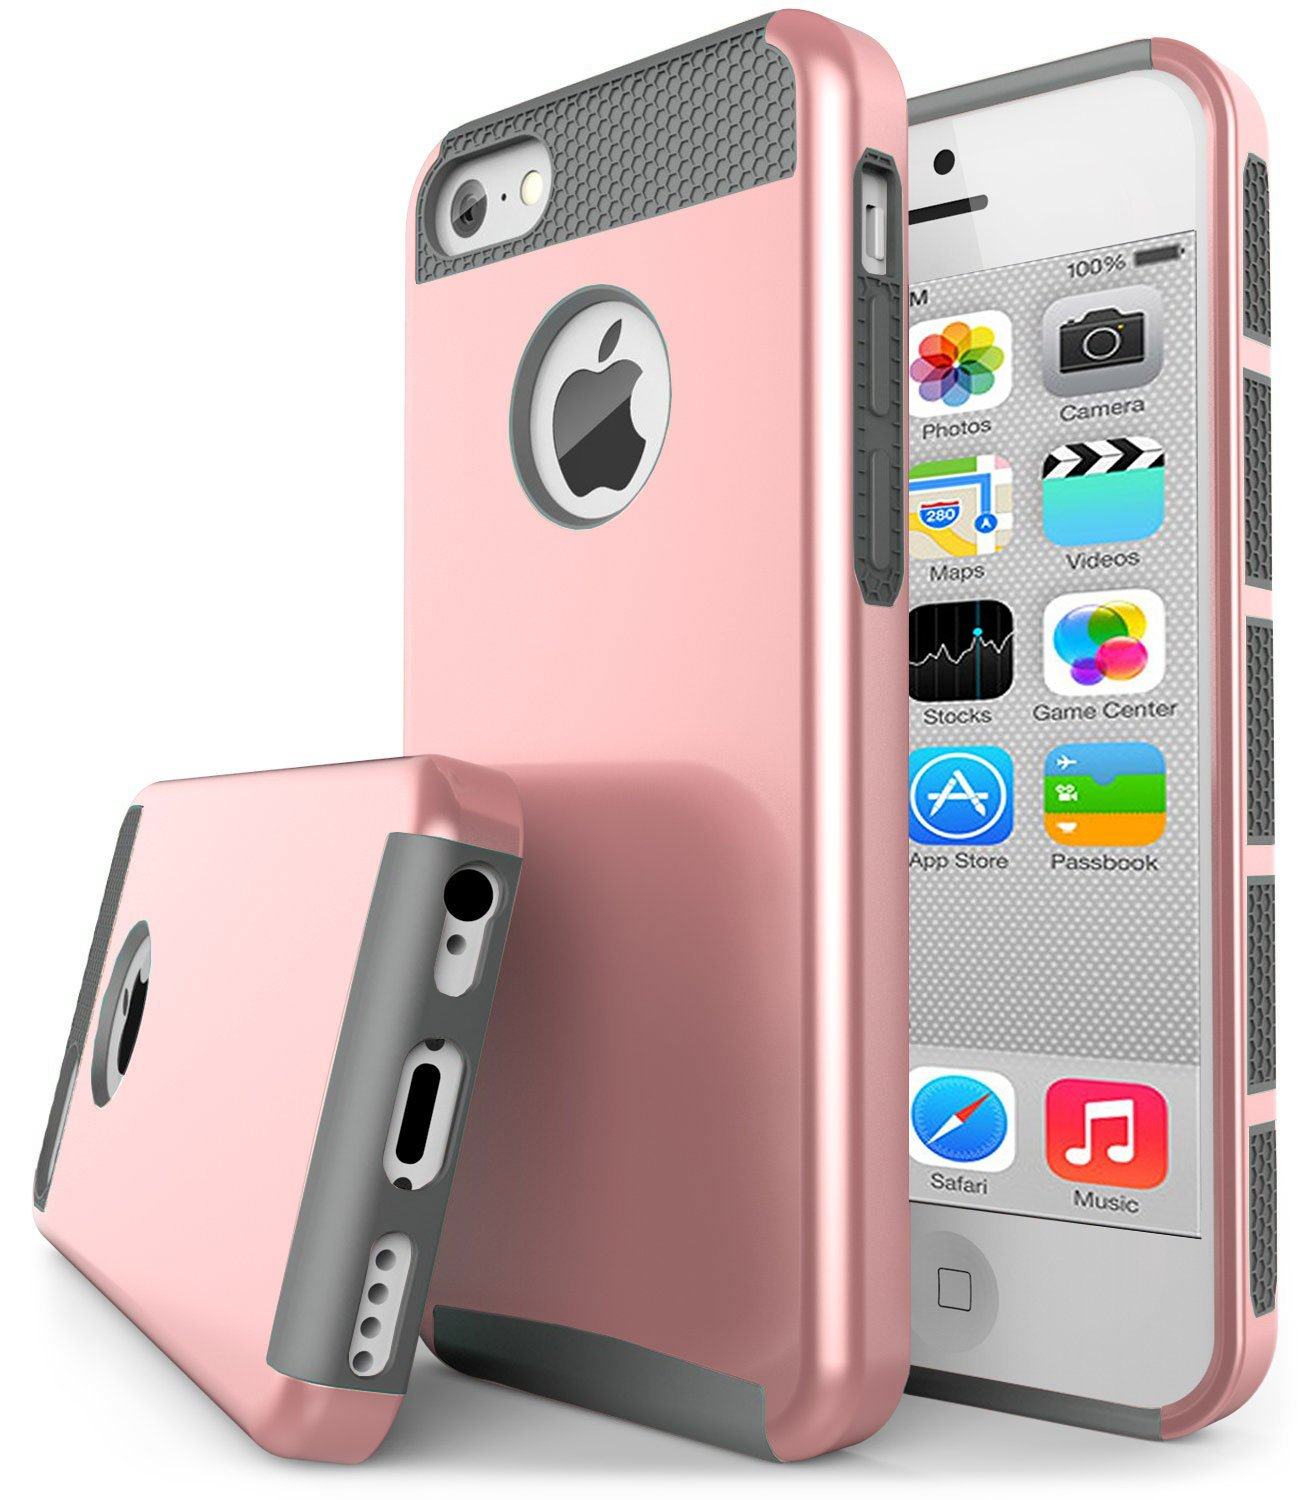 iPhone 5C , Jwest 5c 2 in 1 [Silicone & PC] Hybrid Dual-Layer Heavy Duty Rugged Slim Bumper Shockproof Protective Rear Case Cover for Apple iPhone 5C Rose Gold 195